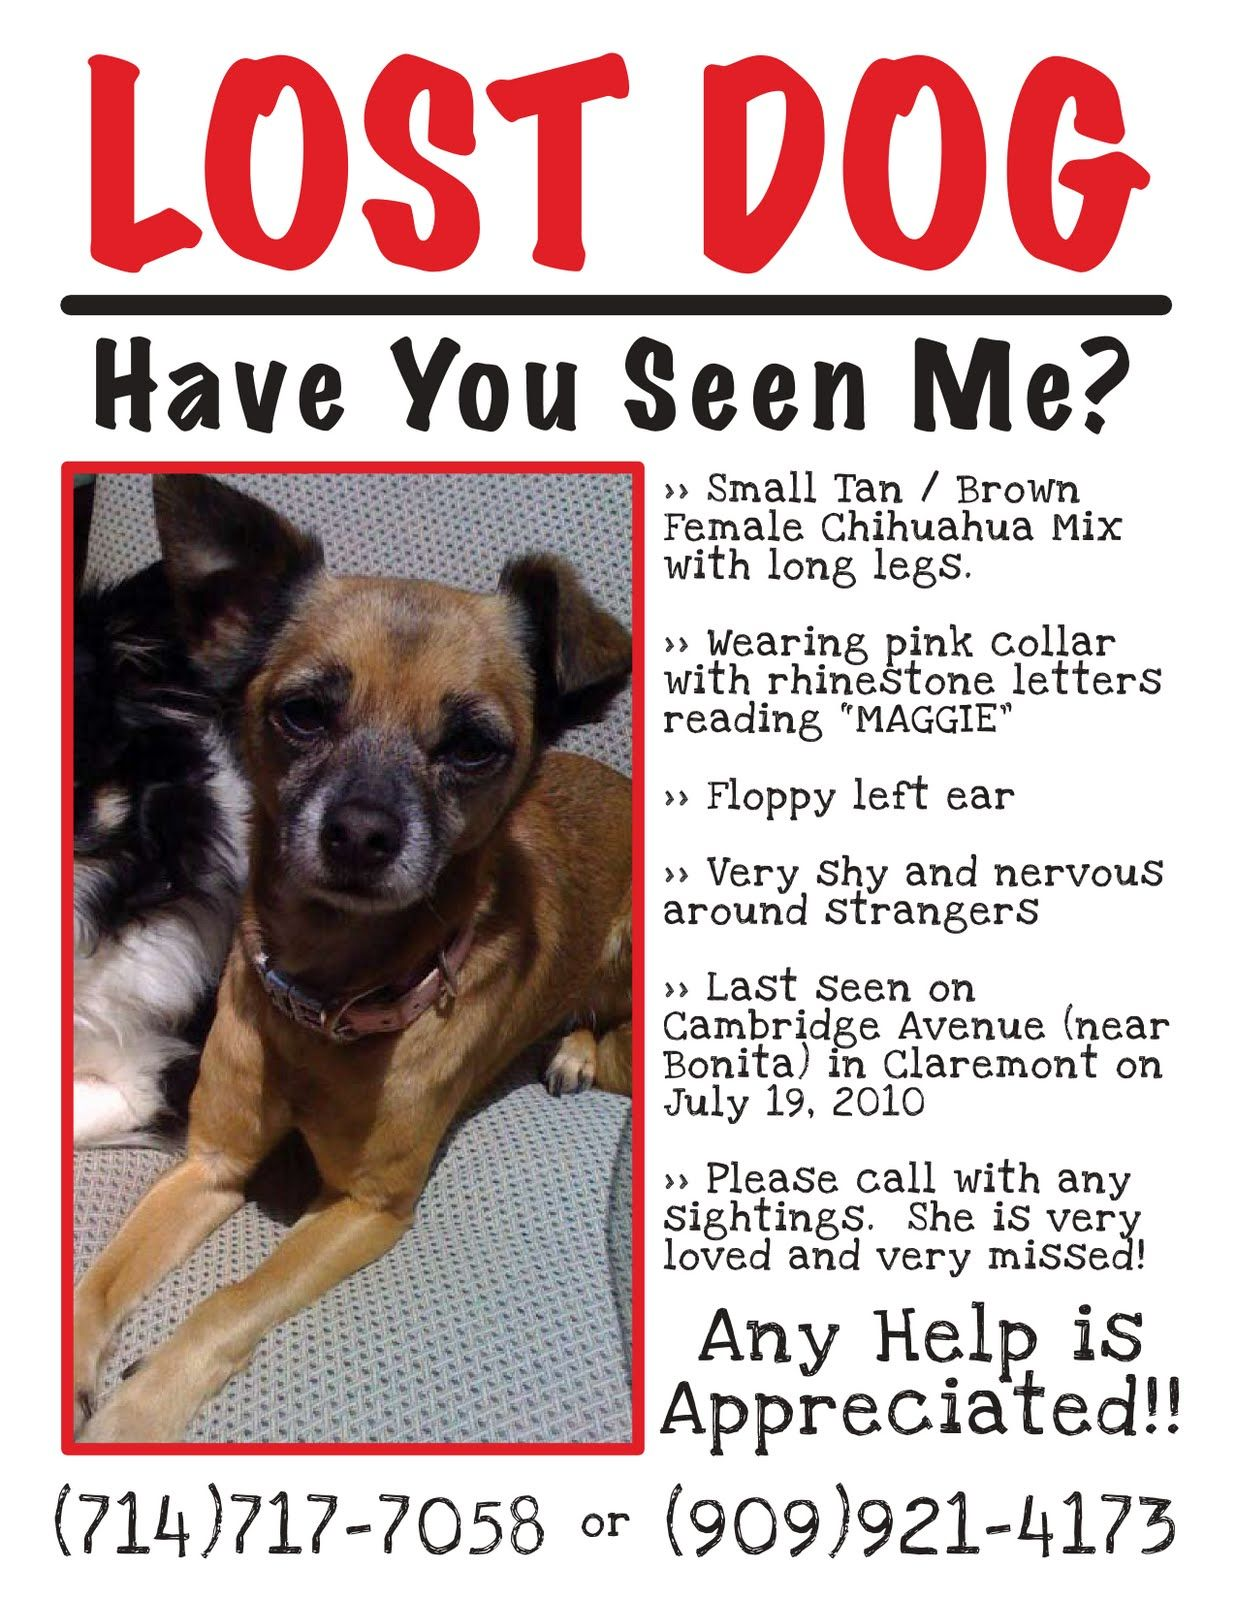 flyers for missing pets in texas Lost Dog Flyer – Lost Dog Flyer Template Word